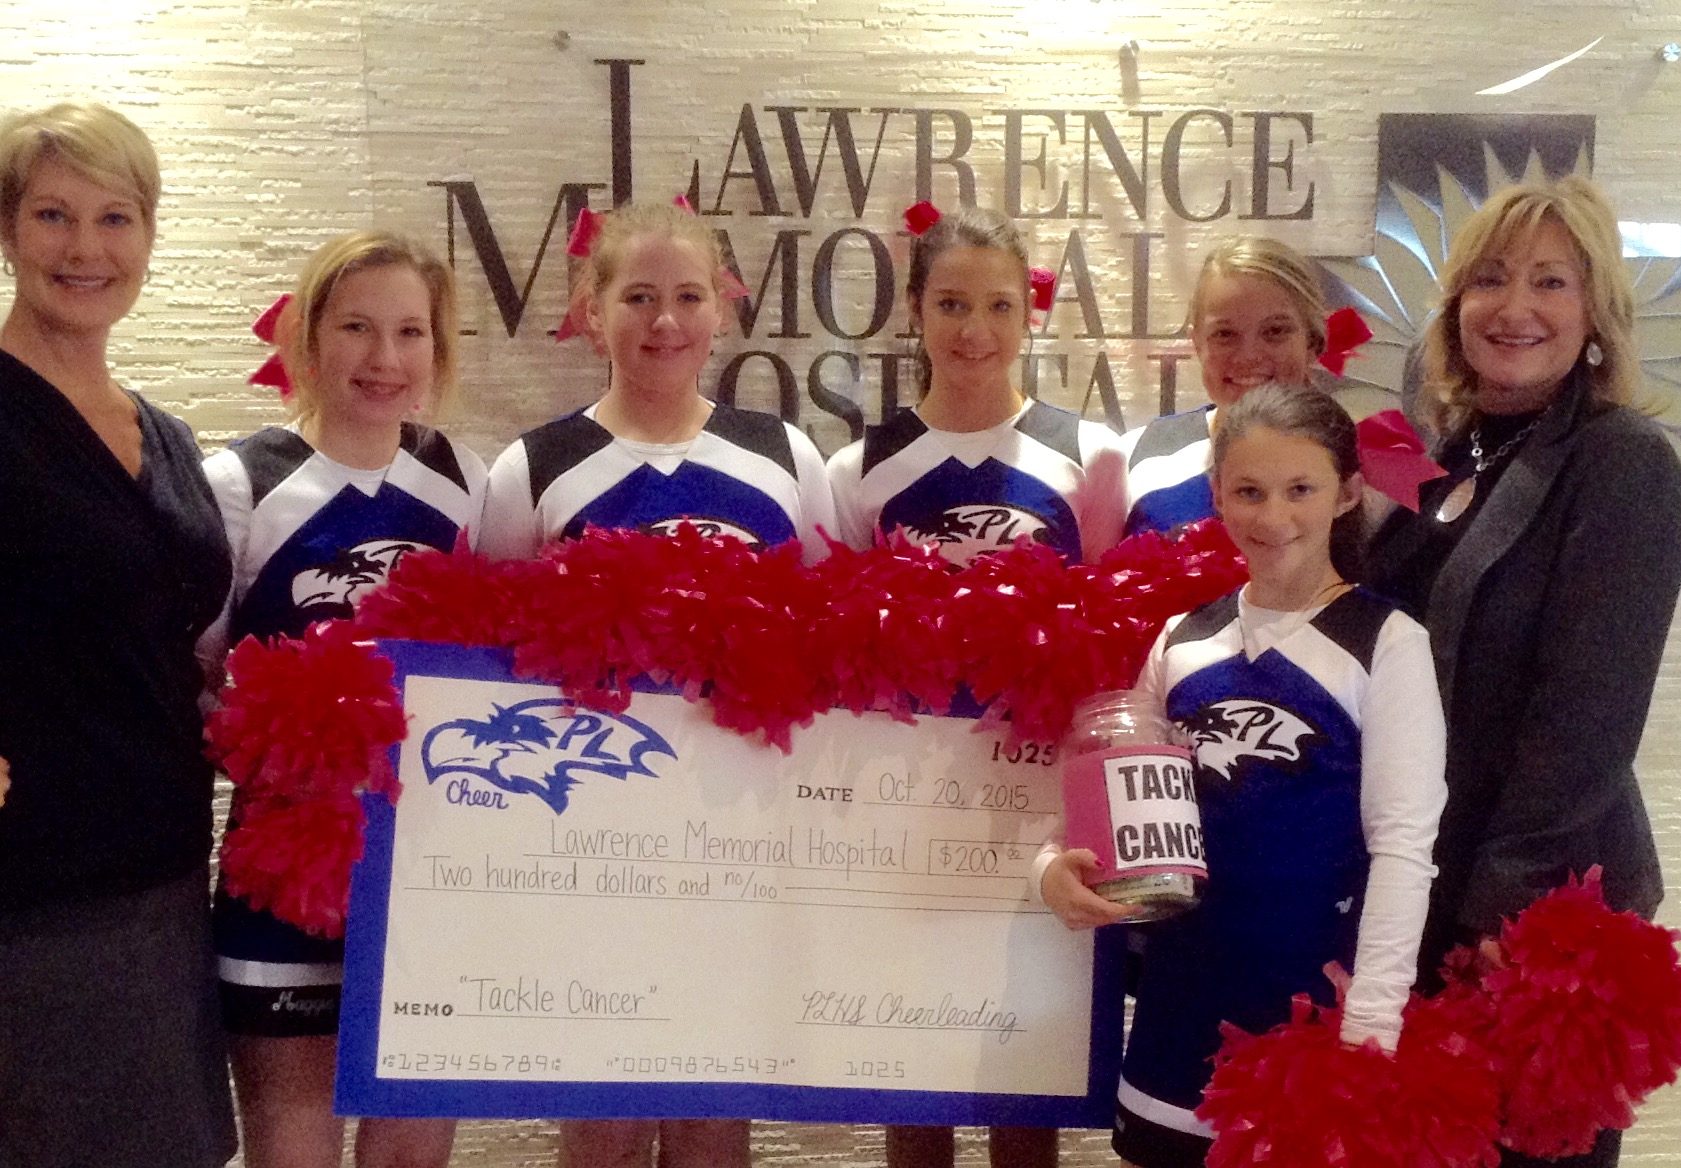 Members of the Perry-Lecompton High School cheerleading squad raised funds during October, breast cancer awareness month. The girls recently visited Lawrence Memorial Hospital to present the funds they raised. Pictured are, from left, Tiffany Hall, LMH Endowment Association annual giving manager, cheerleaders Maggie Schmidt, Madison Hite, Gabby Gonzalez, Darian Eddy and Breanna Lay, and Kathy Clausing-Willis, LMH vice president and chief development officer.